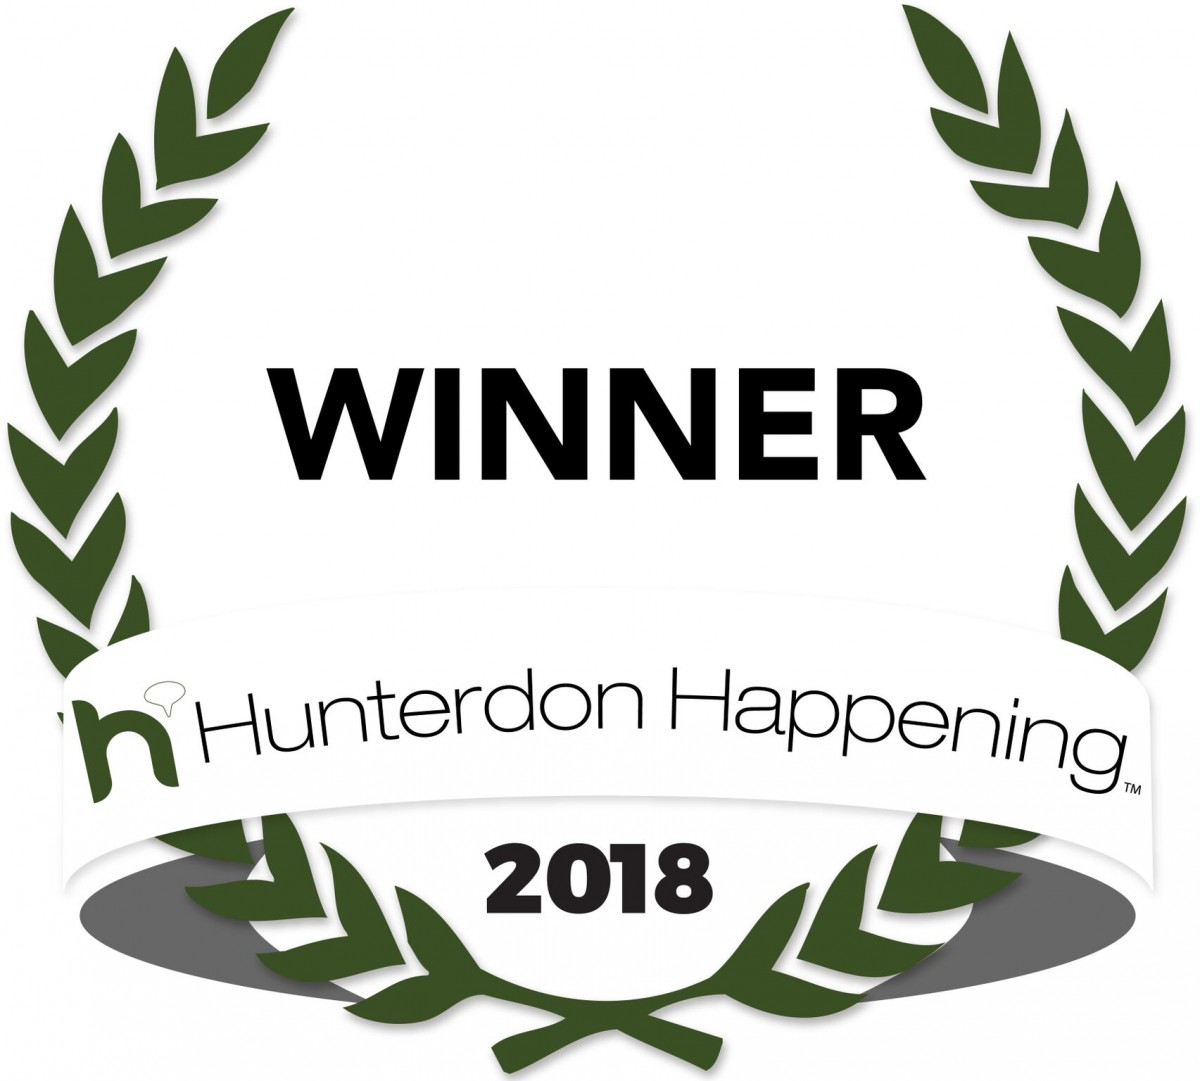 The Results Are In For The Hunterdon Happenings 2018 Winners